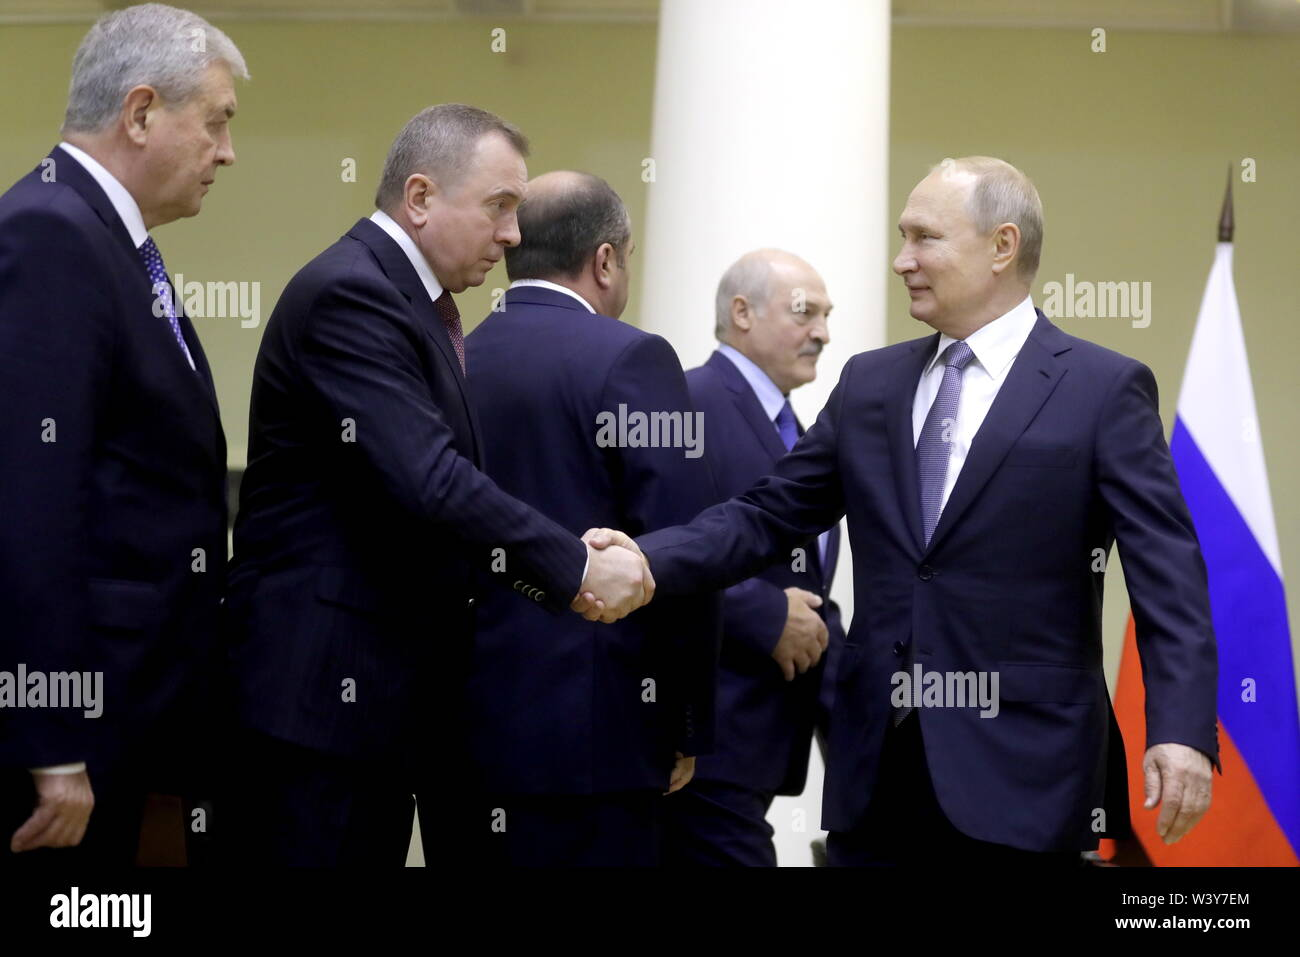 St Petersburg, Russia. 18th July, 2019. ST PETERSBURG, RUSSIA - JULY 18, 2019: Russia's President Vladimir Putin greets Belarus' Foreign Minister Vladimir Maskei and Ambassador to Russia Vladimir Semashko (R-L front) during a meeting with President Alexander Lukashenko (R back) at the Tauride Palace. Mikhail Metzel/TASS Credit: ITAR-TASS News Agency/Alamy Live News - Stock Image